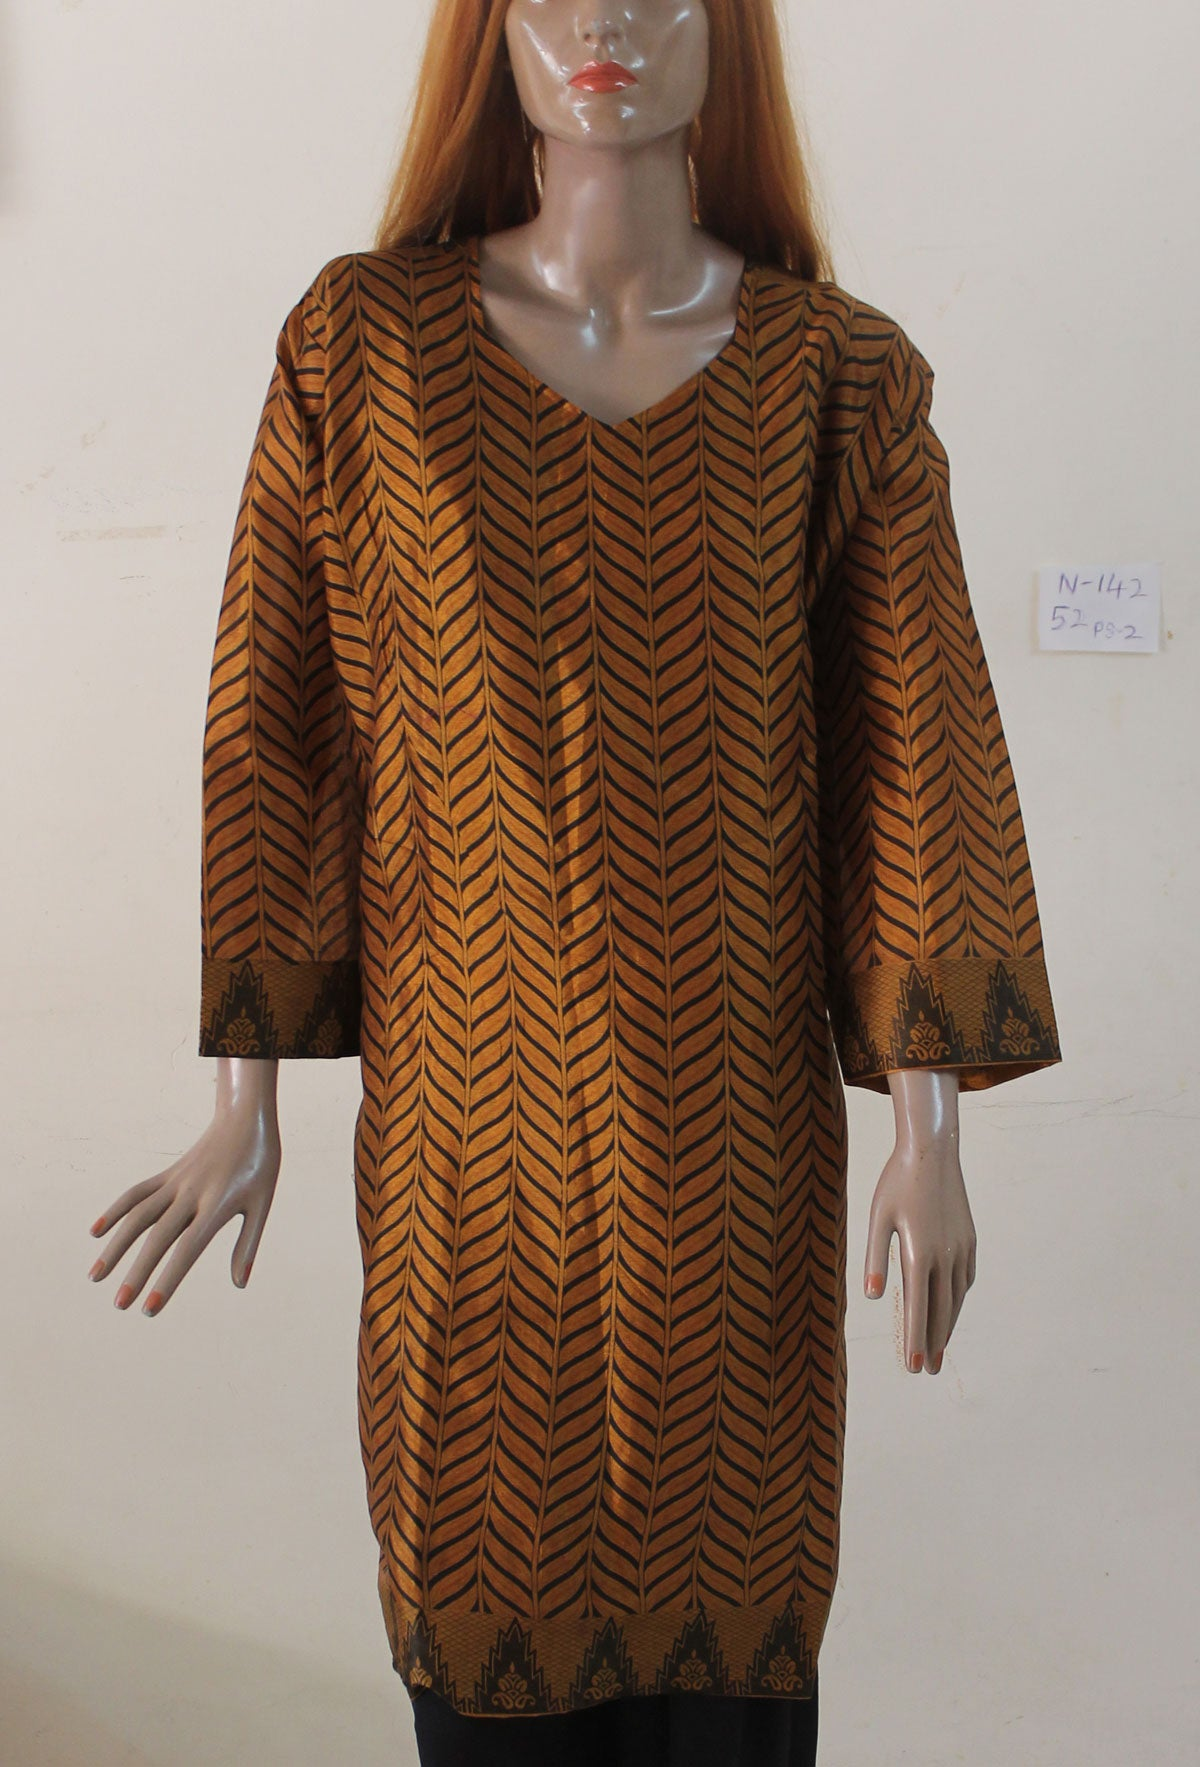 Brown Silk Indian Clothing Women kurta tunic Dress Free Dupatta Plus Size 52